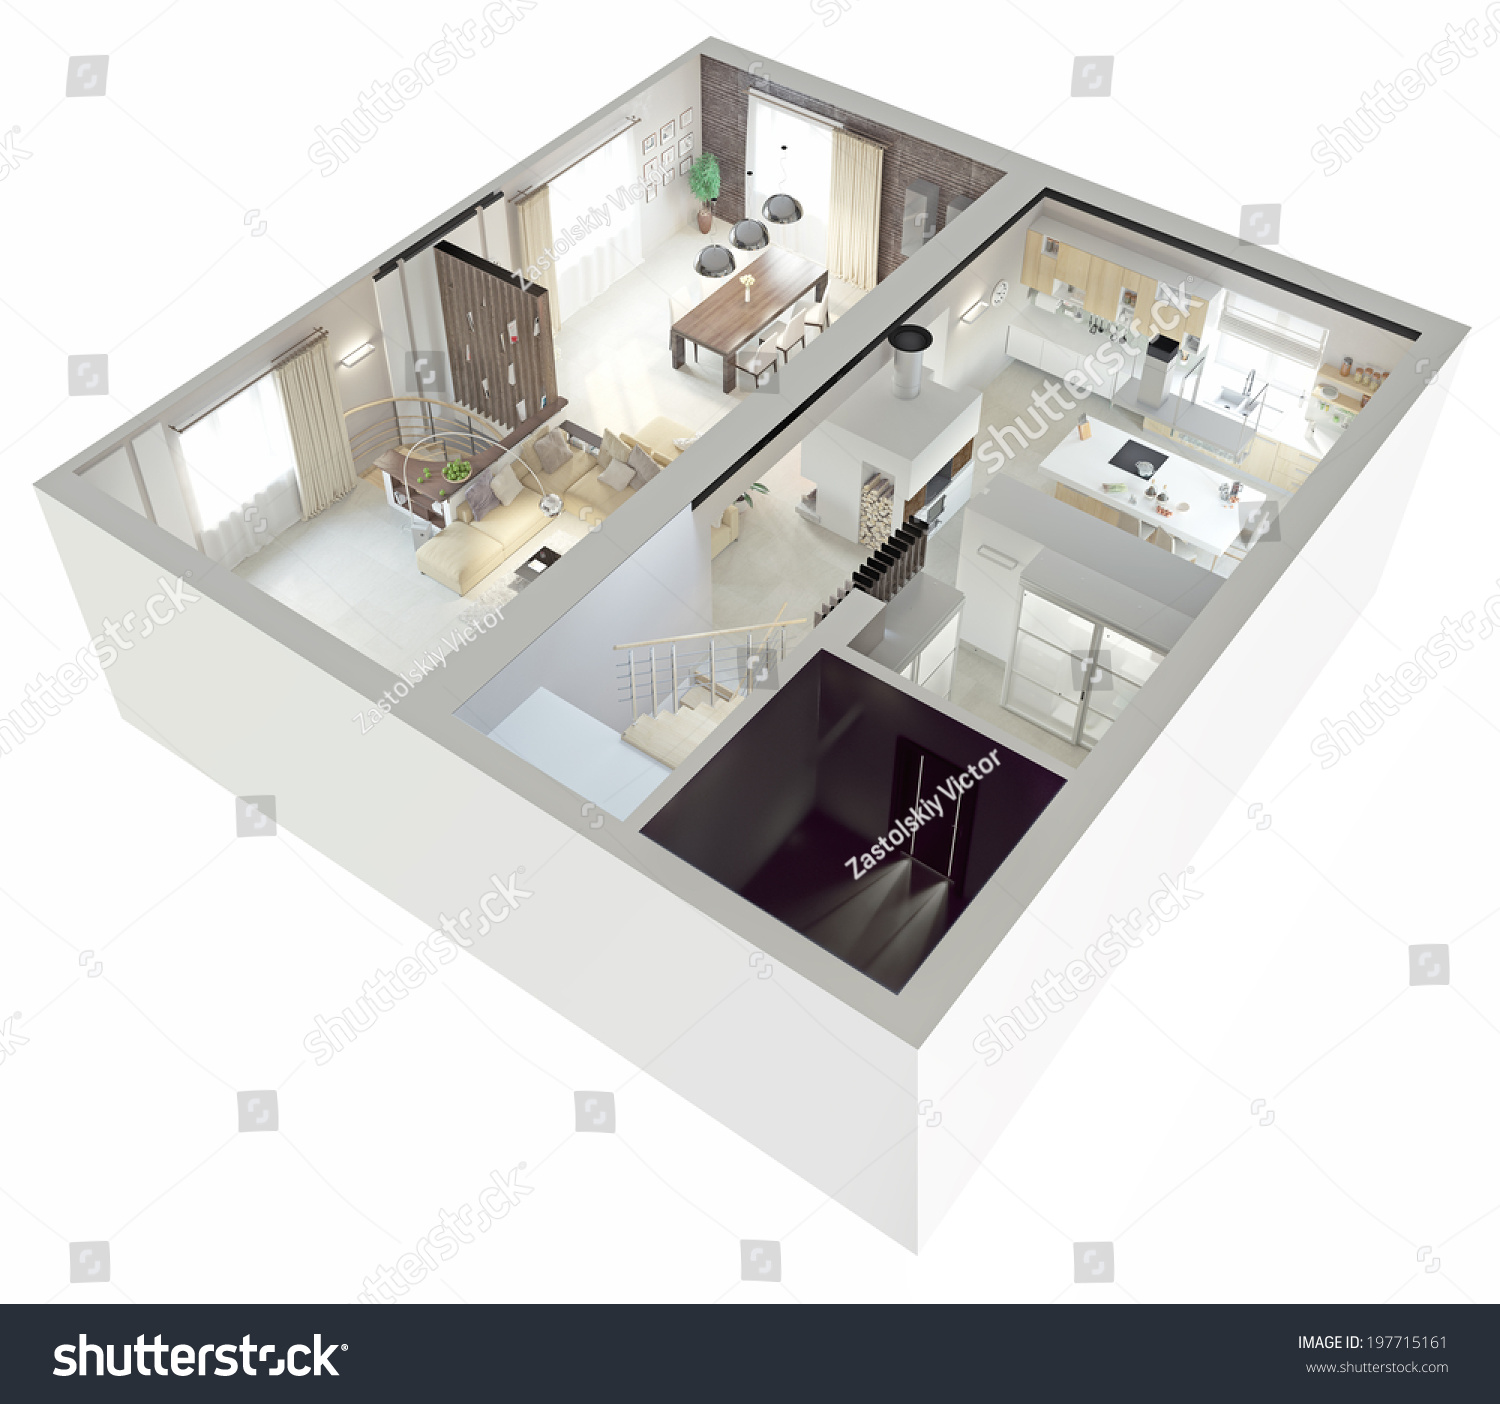 Plan View Of An ApartmentGround Floor Clear 3d Interior Design